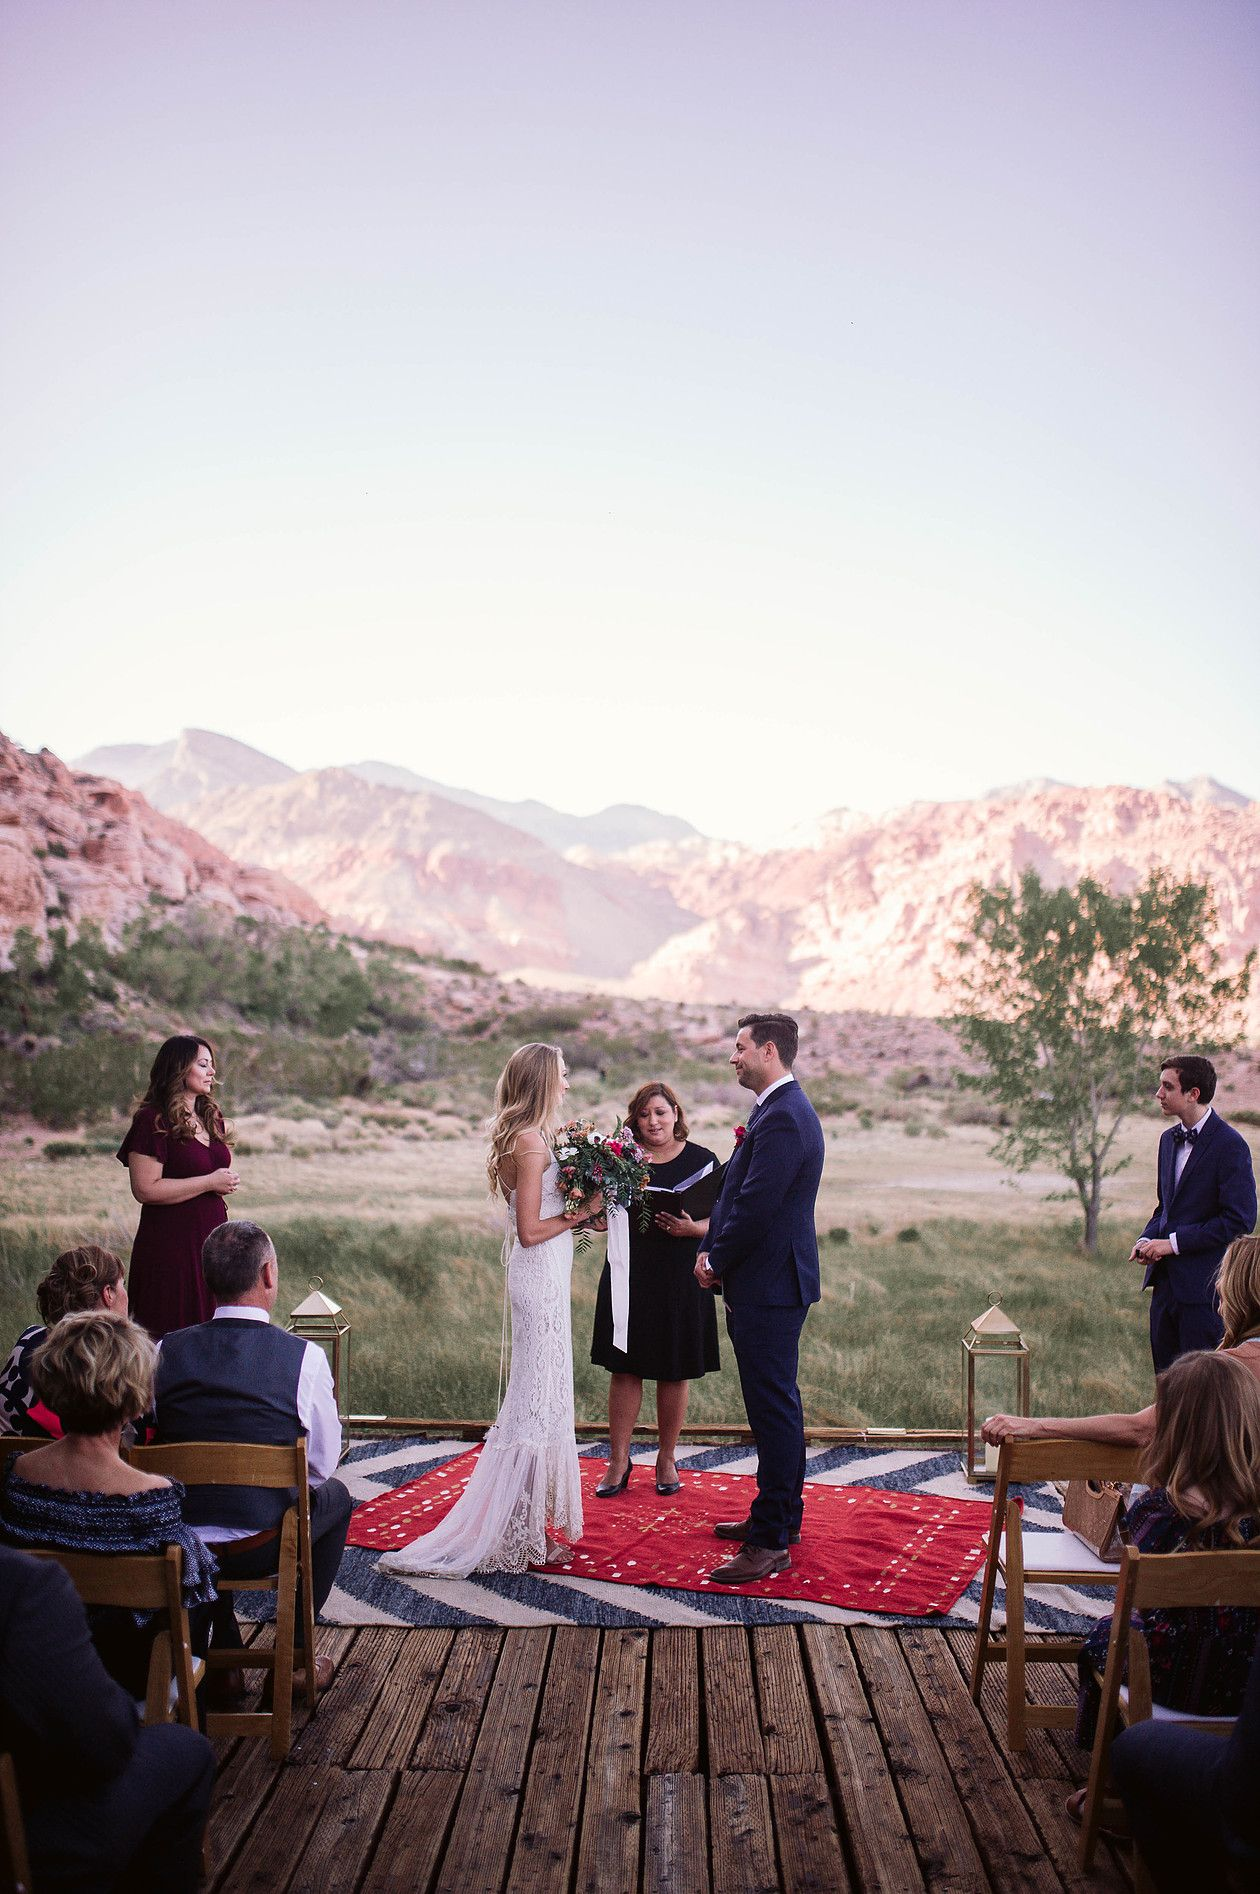 Las Vegas Wedding Packages All Inclusive.Red Rock Canyon Wedding Las Vegas Elopement Las Vegas